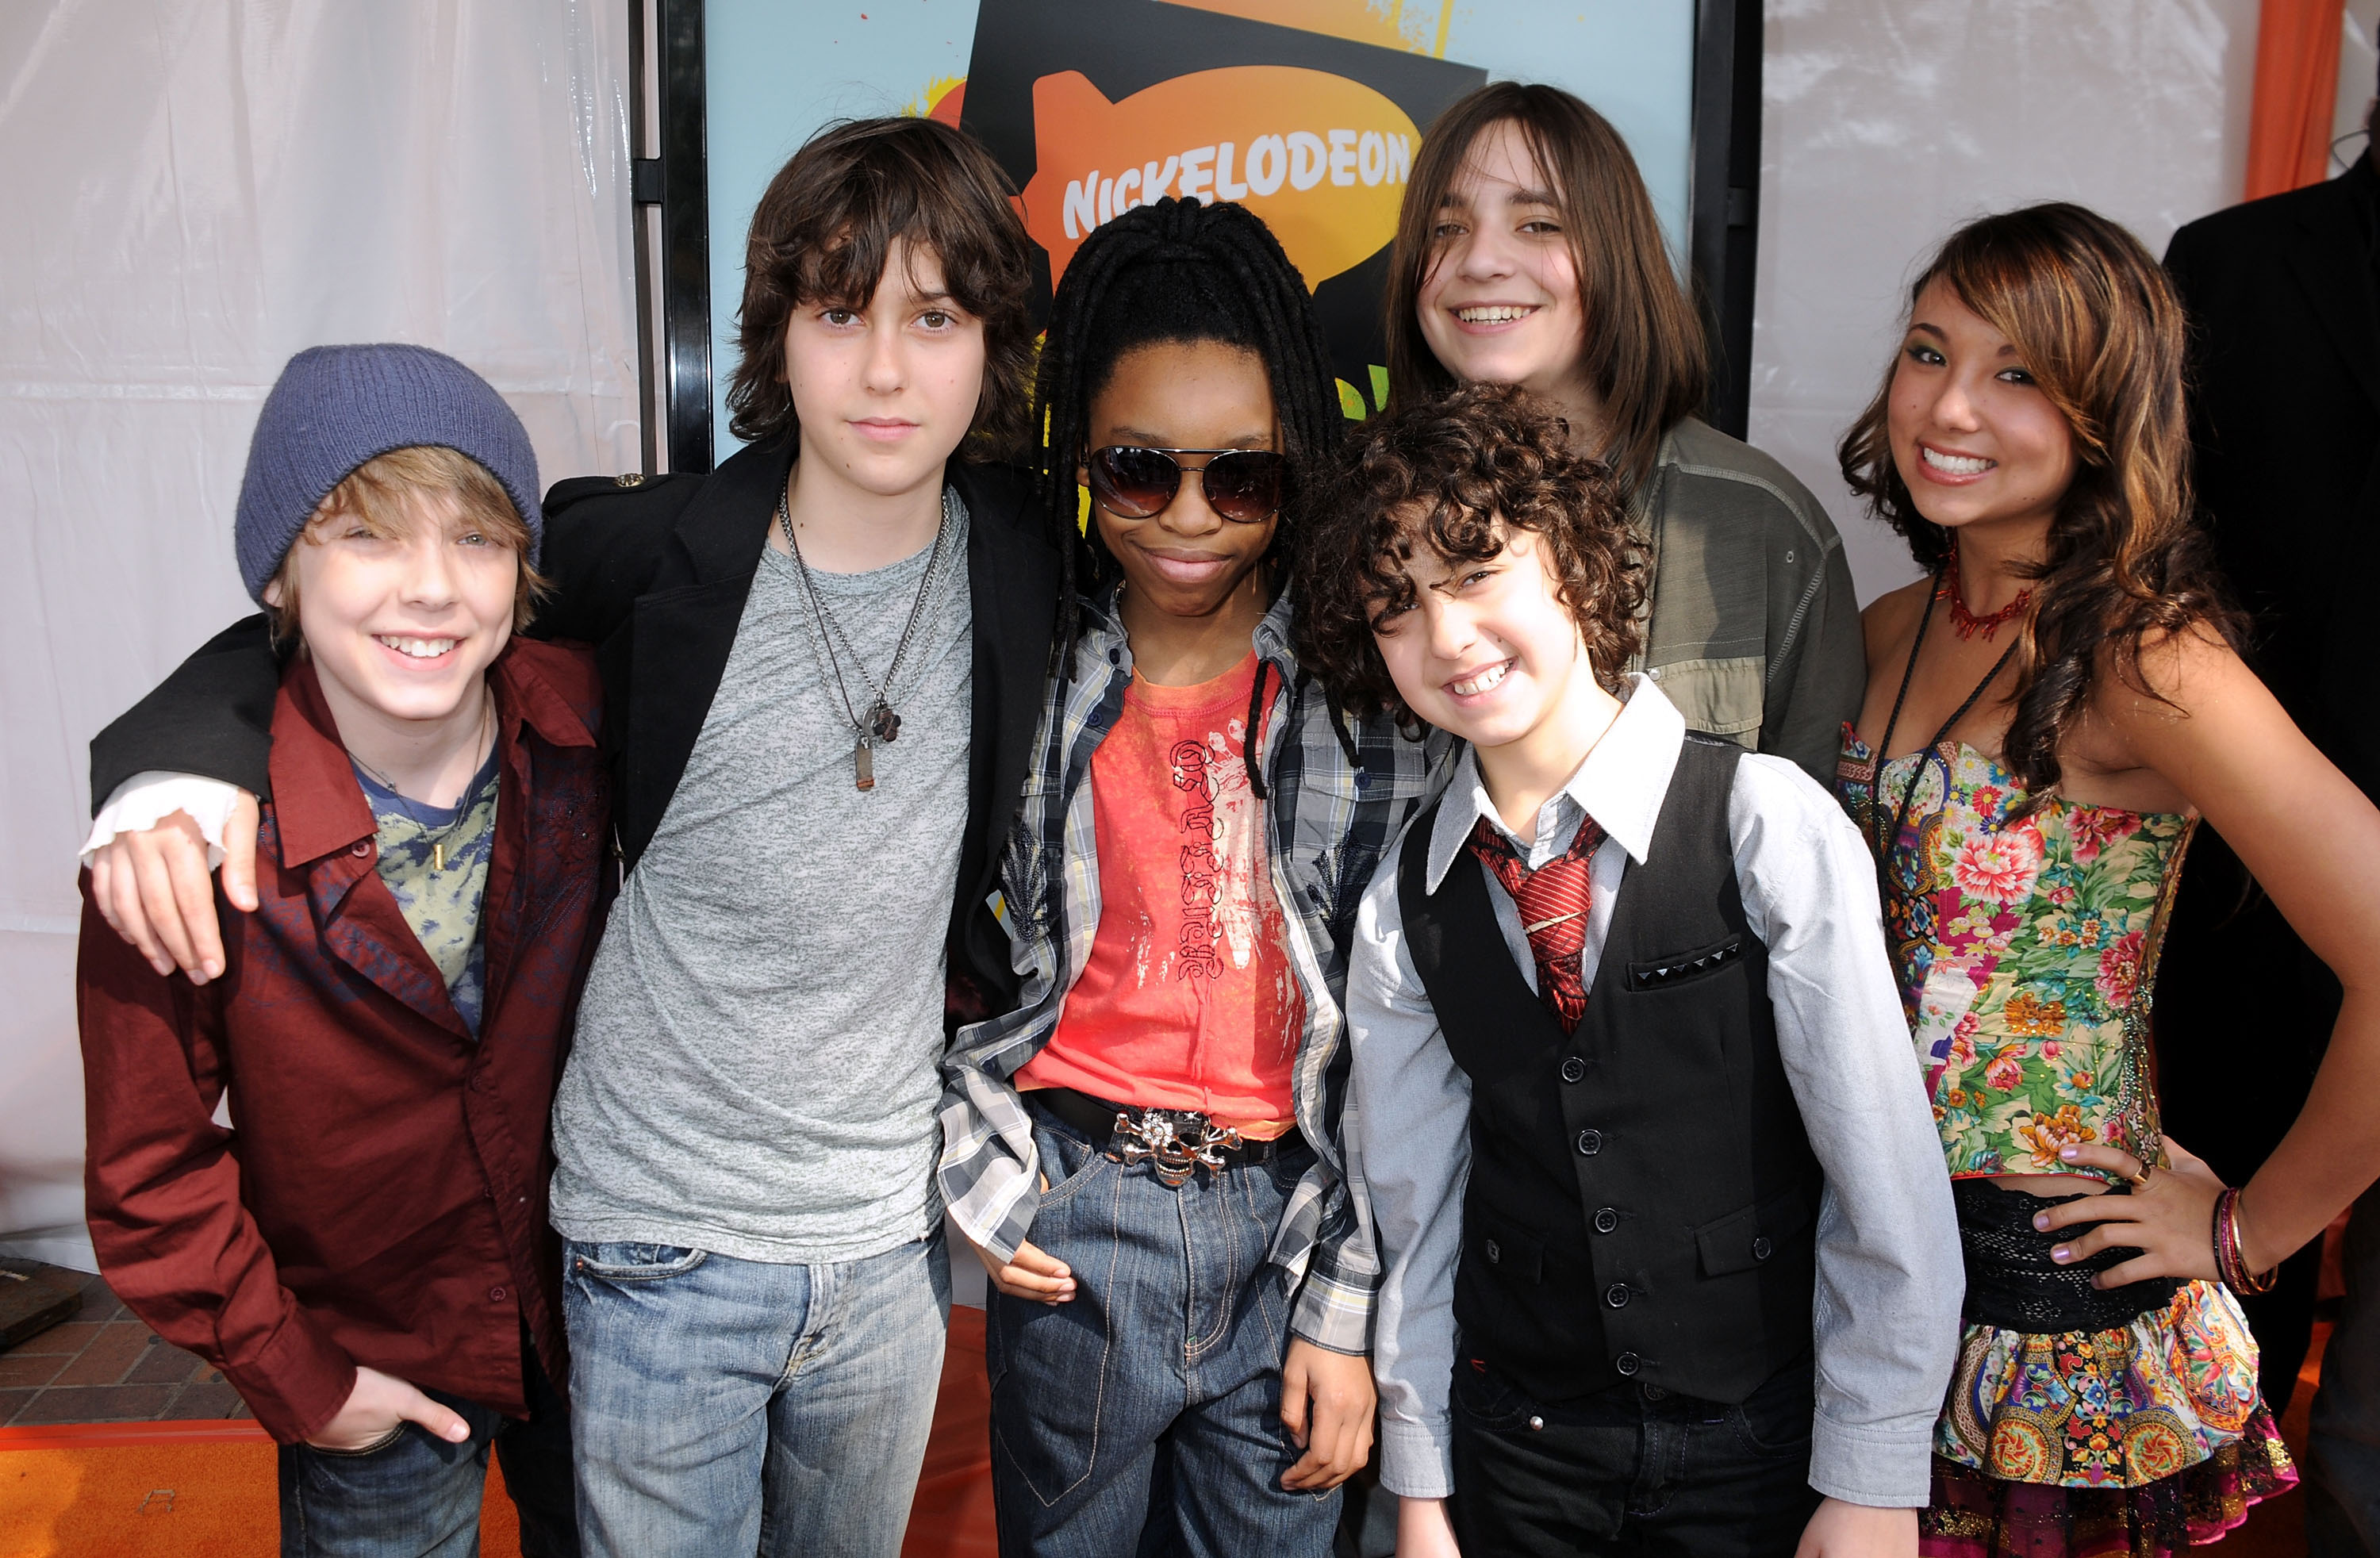 Naked brothers band hot girls The Naked Brothers Band Cast Is Planning A Reunion